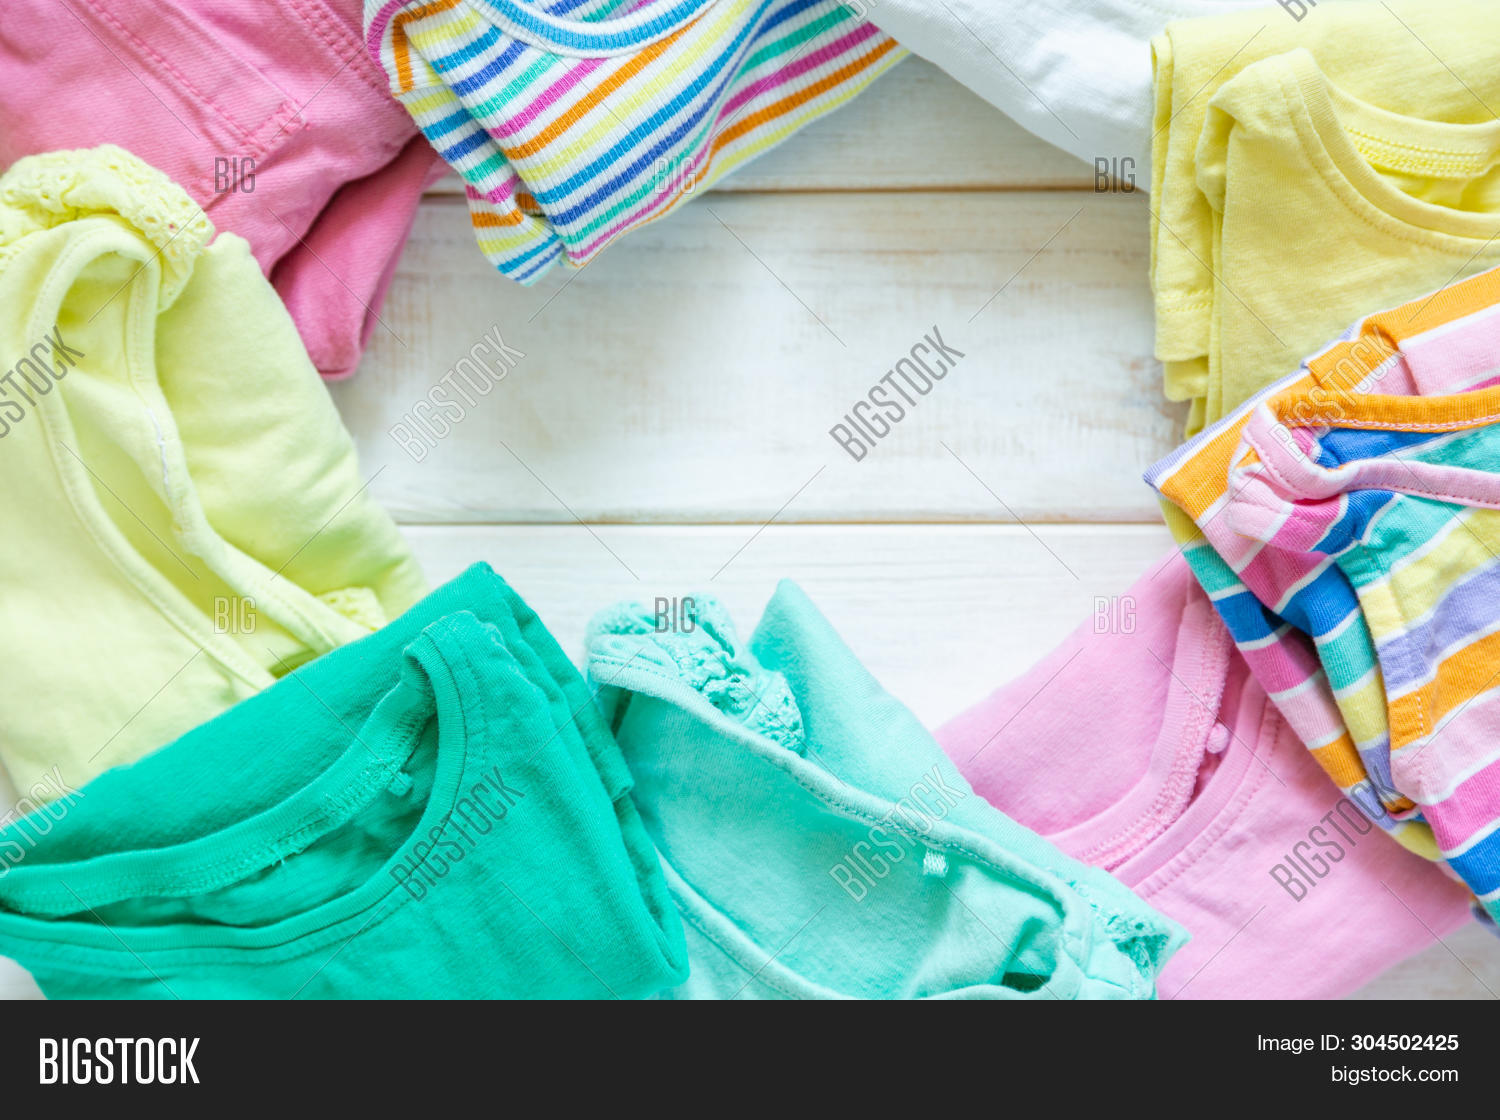 Marie Kondo Tyding Up Method Concept - Folded Kids Clothes In Pastel Colors, Copy Space